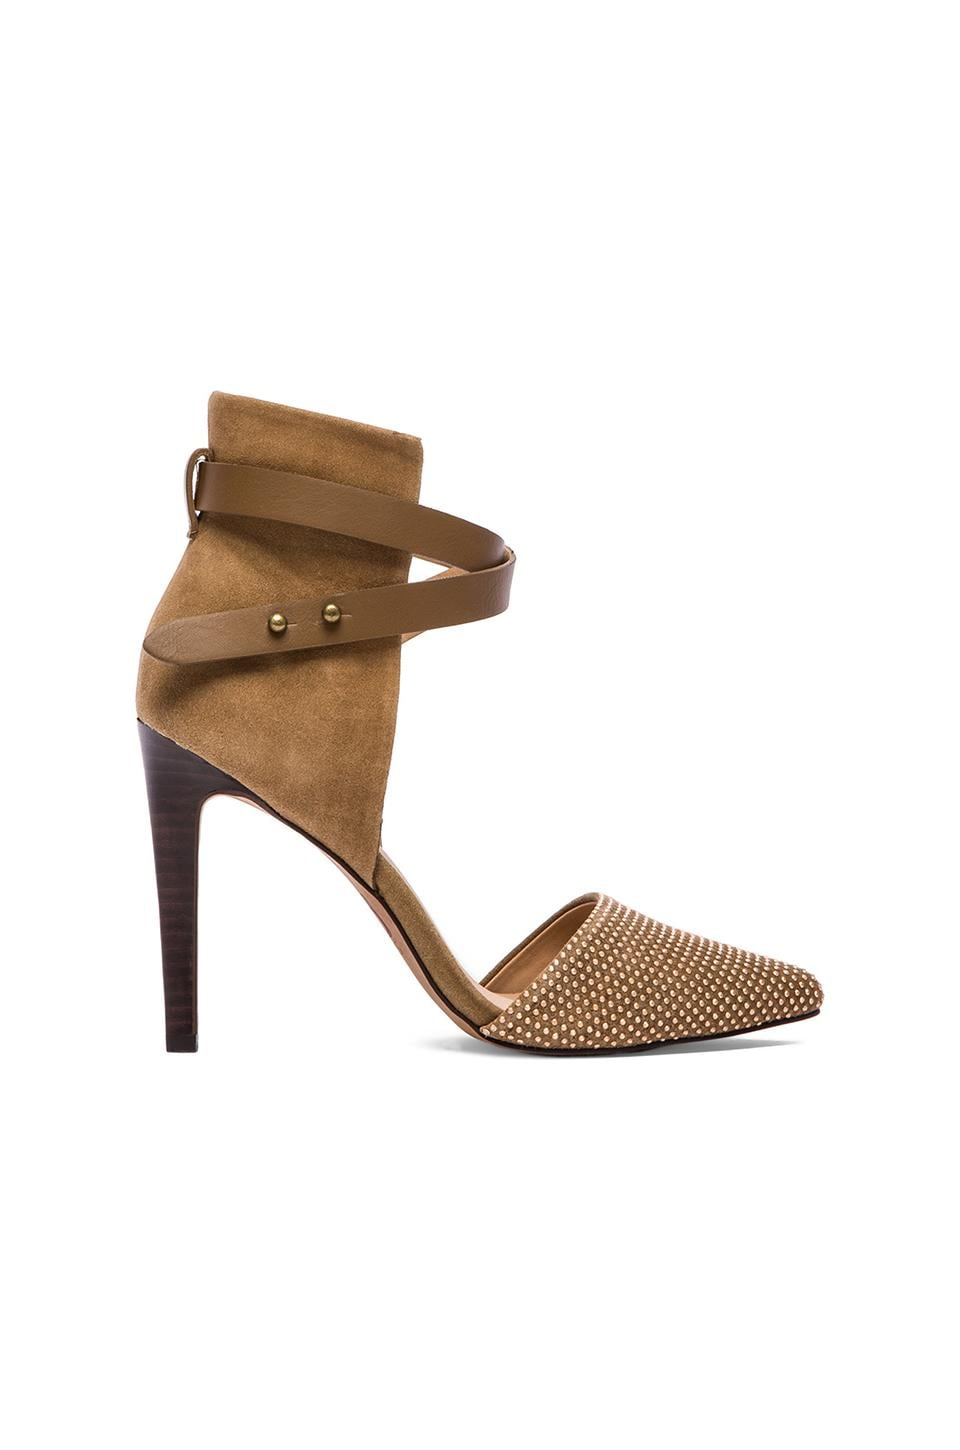 Joe's Jeans Laney II Heel in Khaki